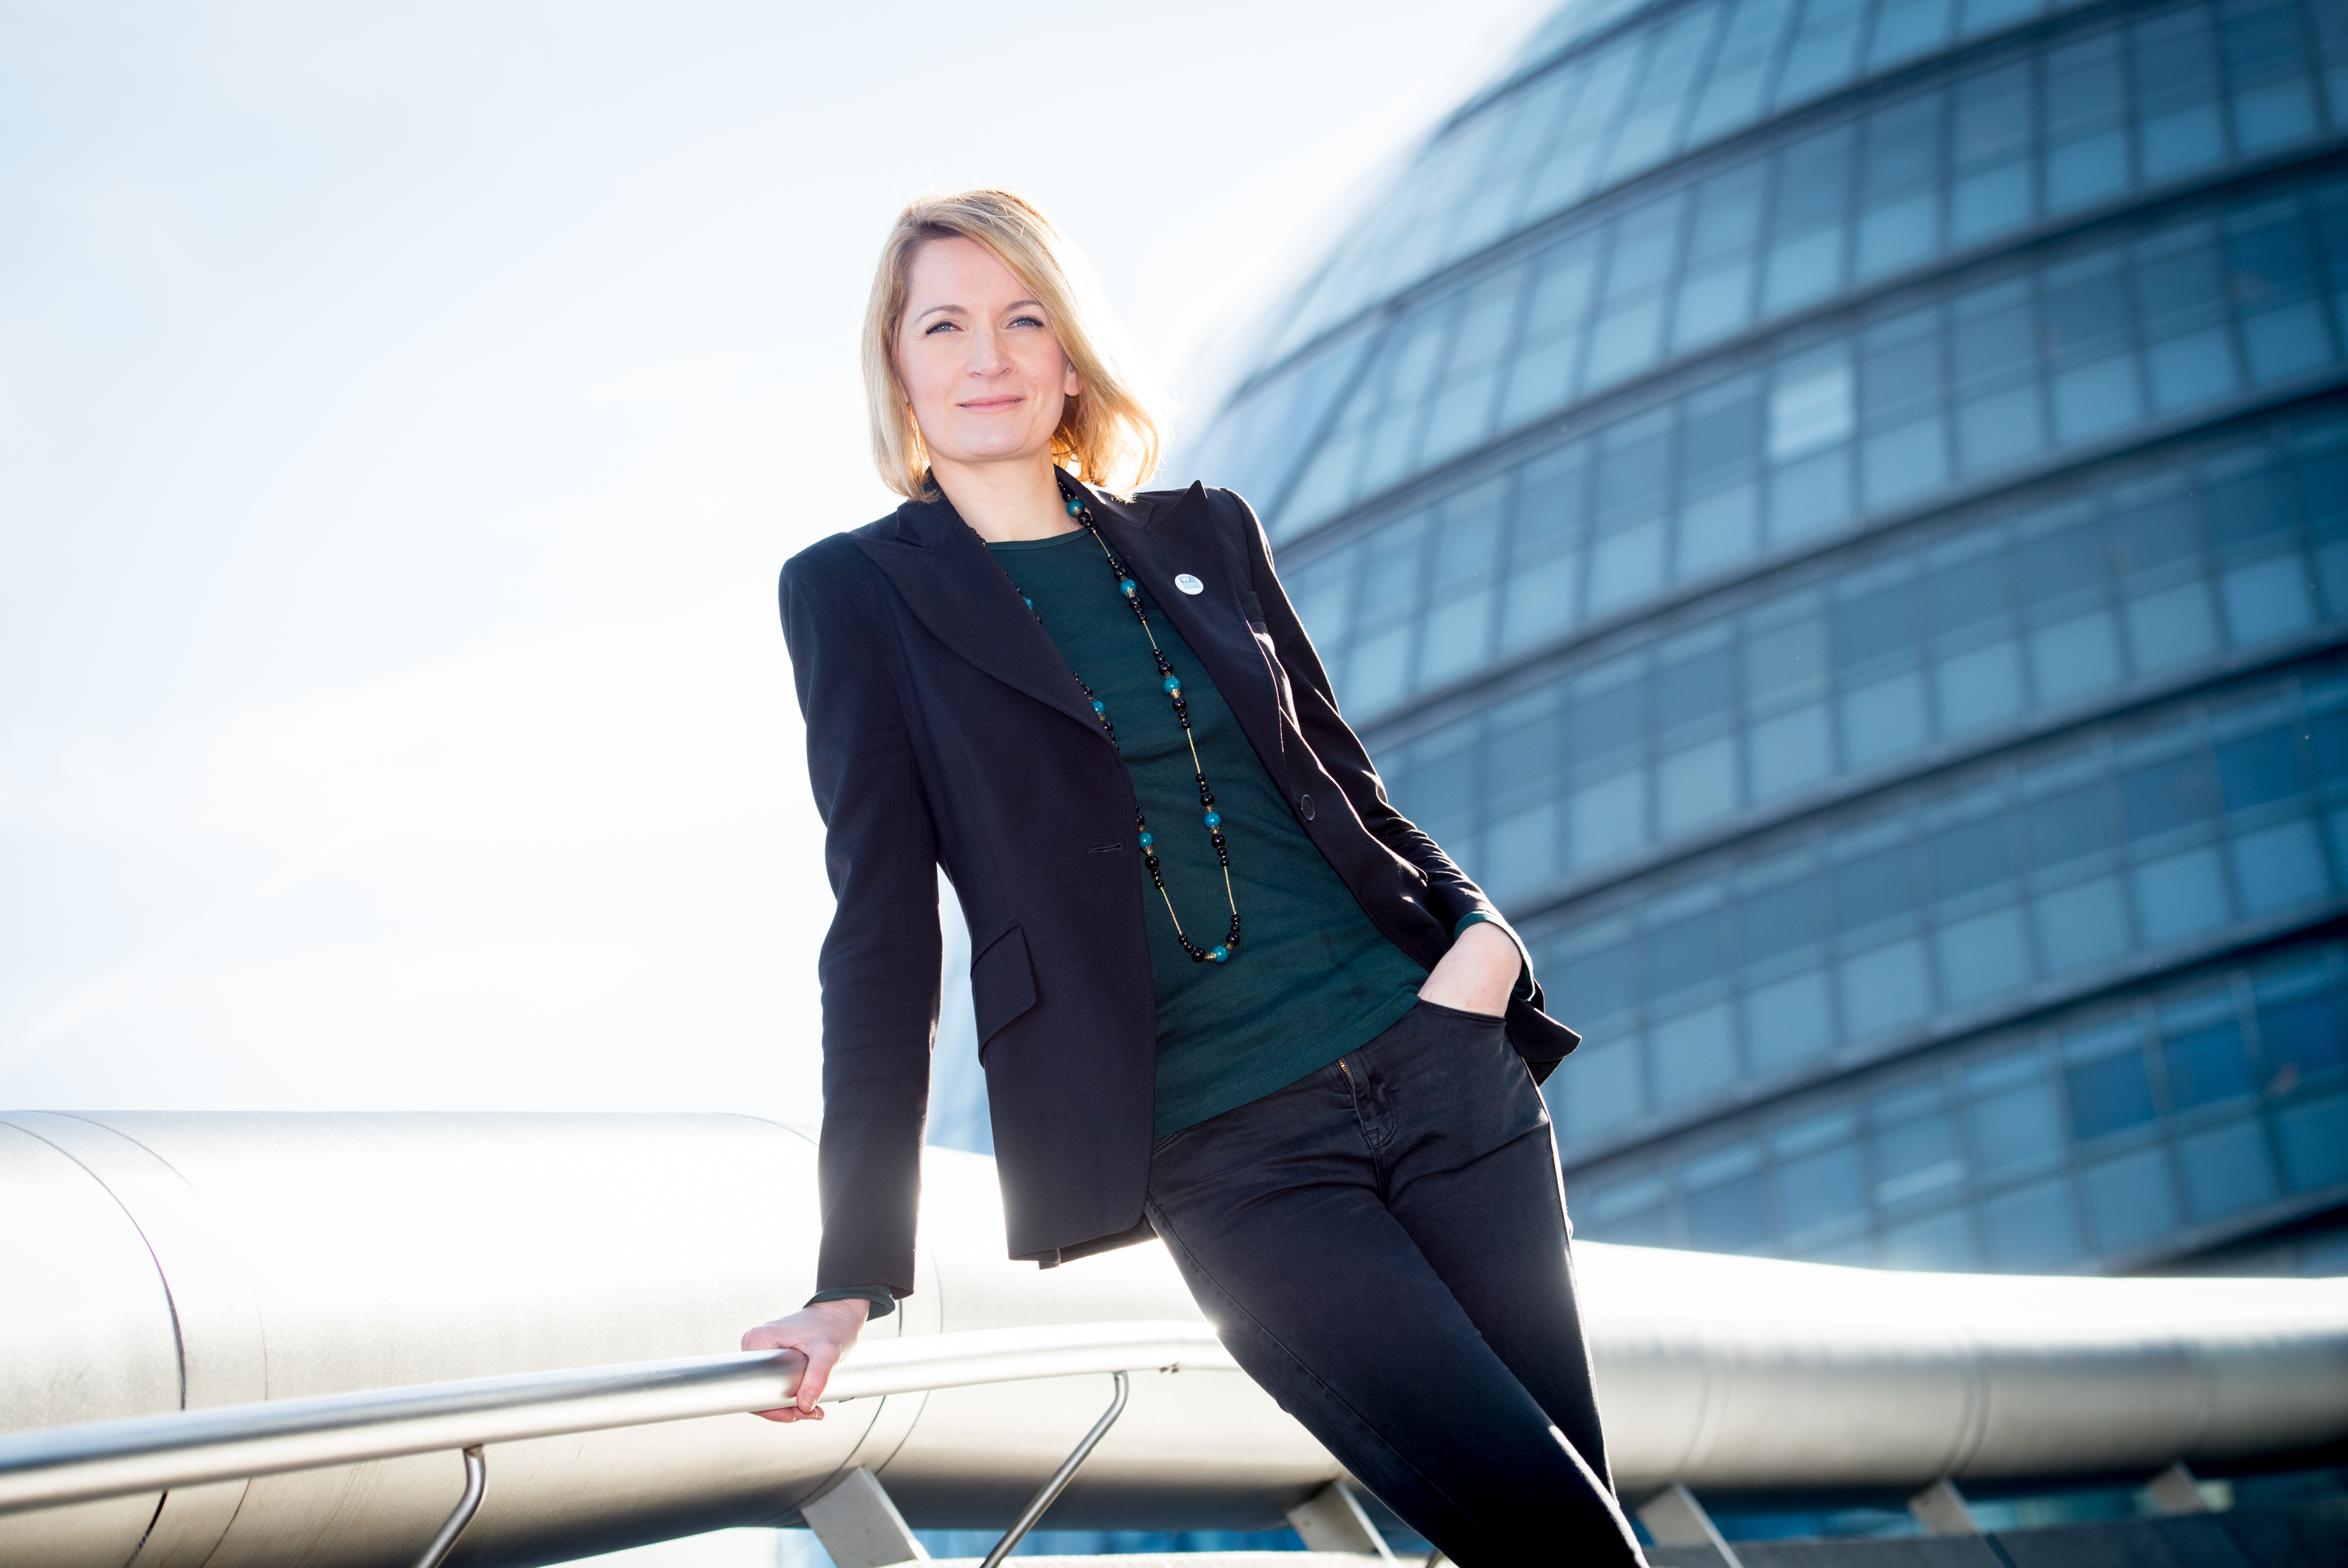 Sophie_Walker_Womens_Equality_Party.jpg